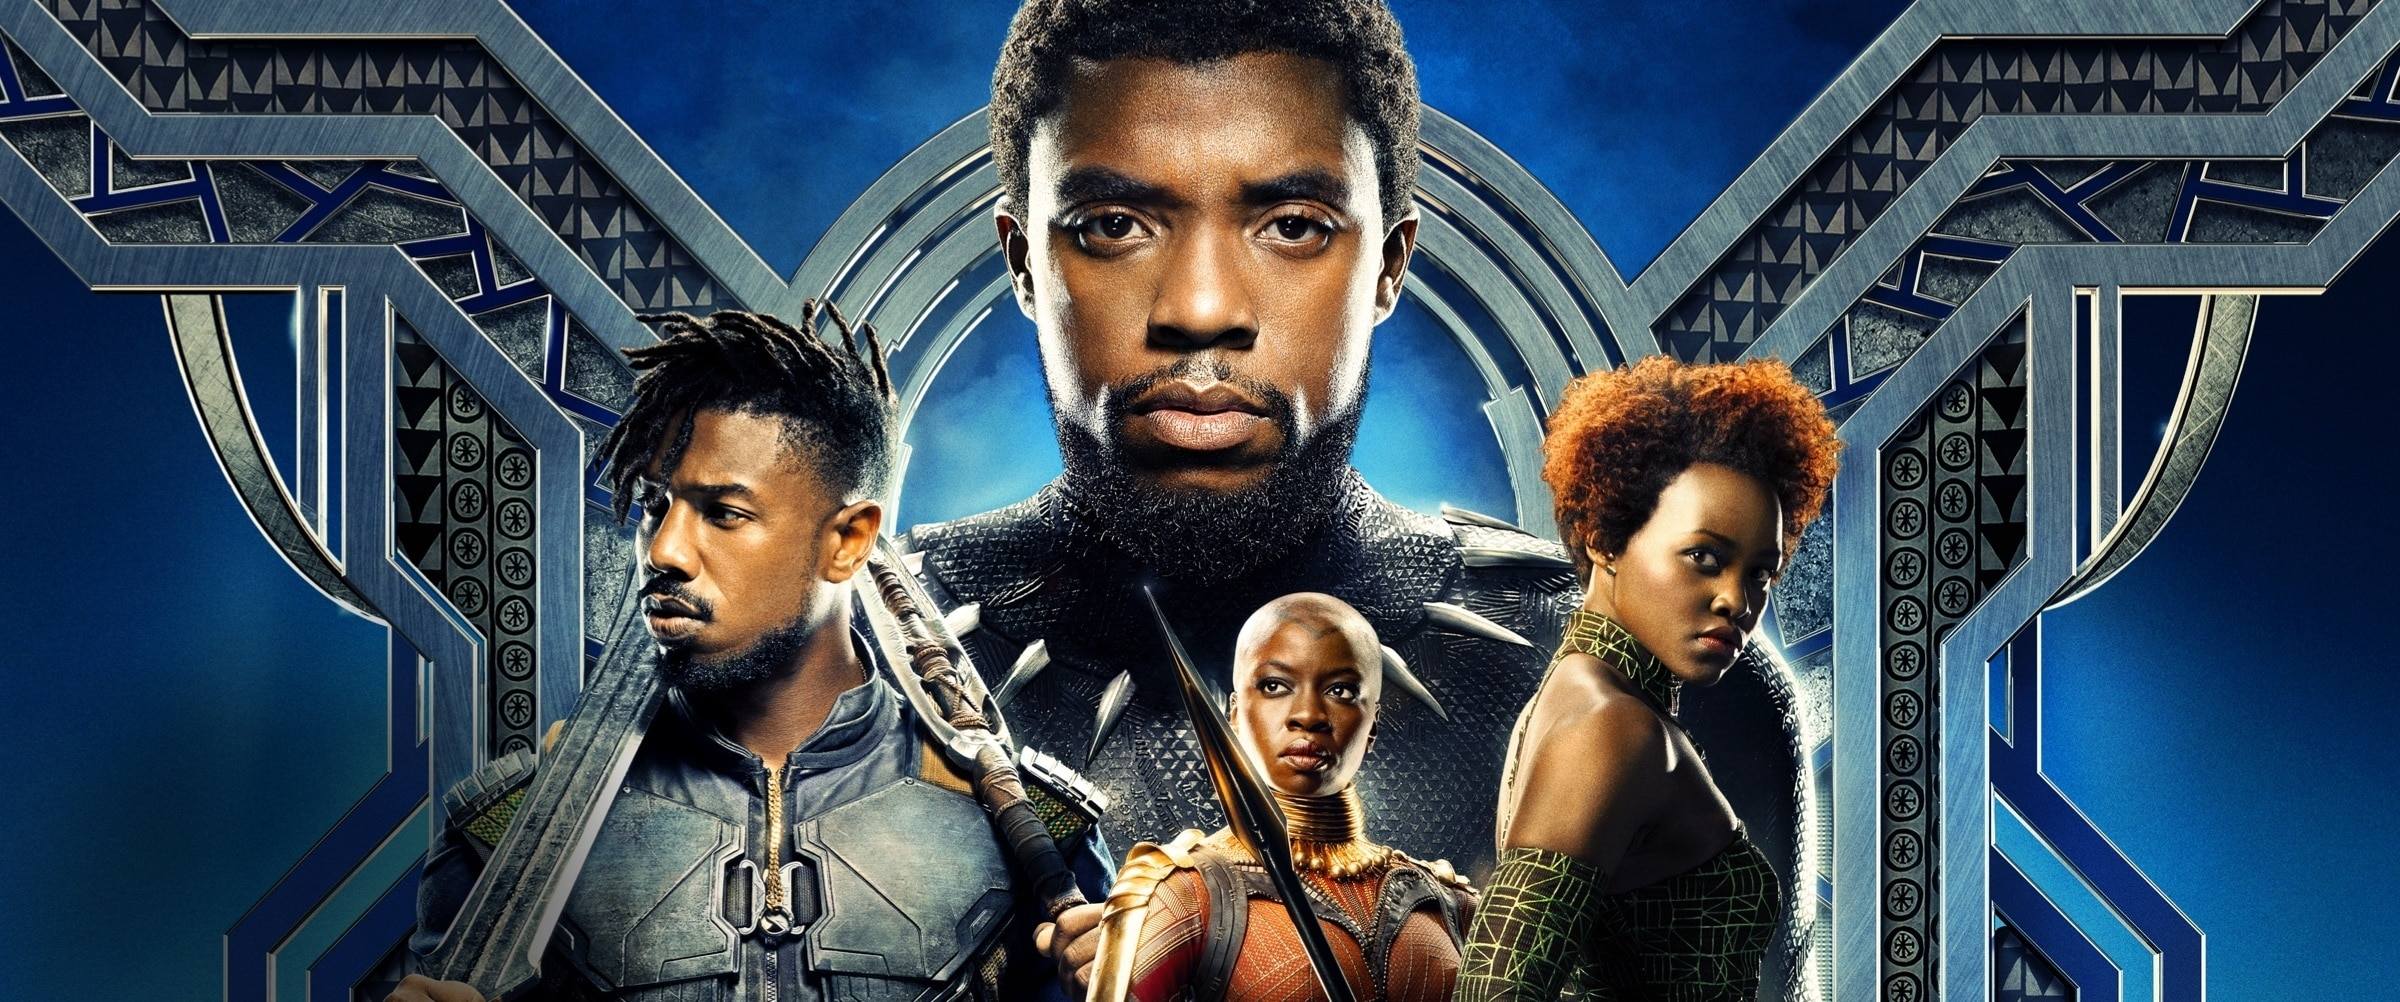 Black Panther | In cinemas 13 February